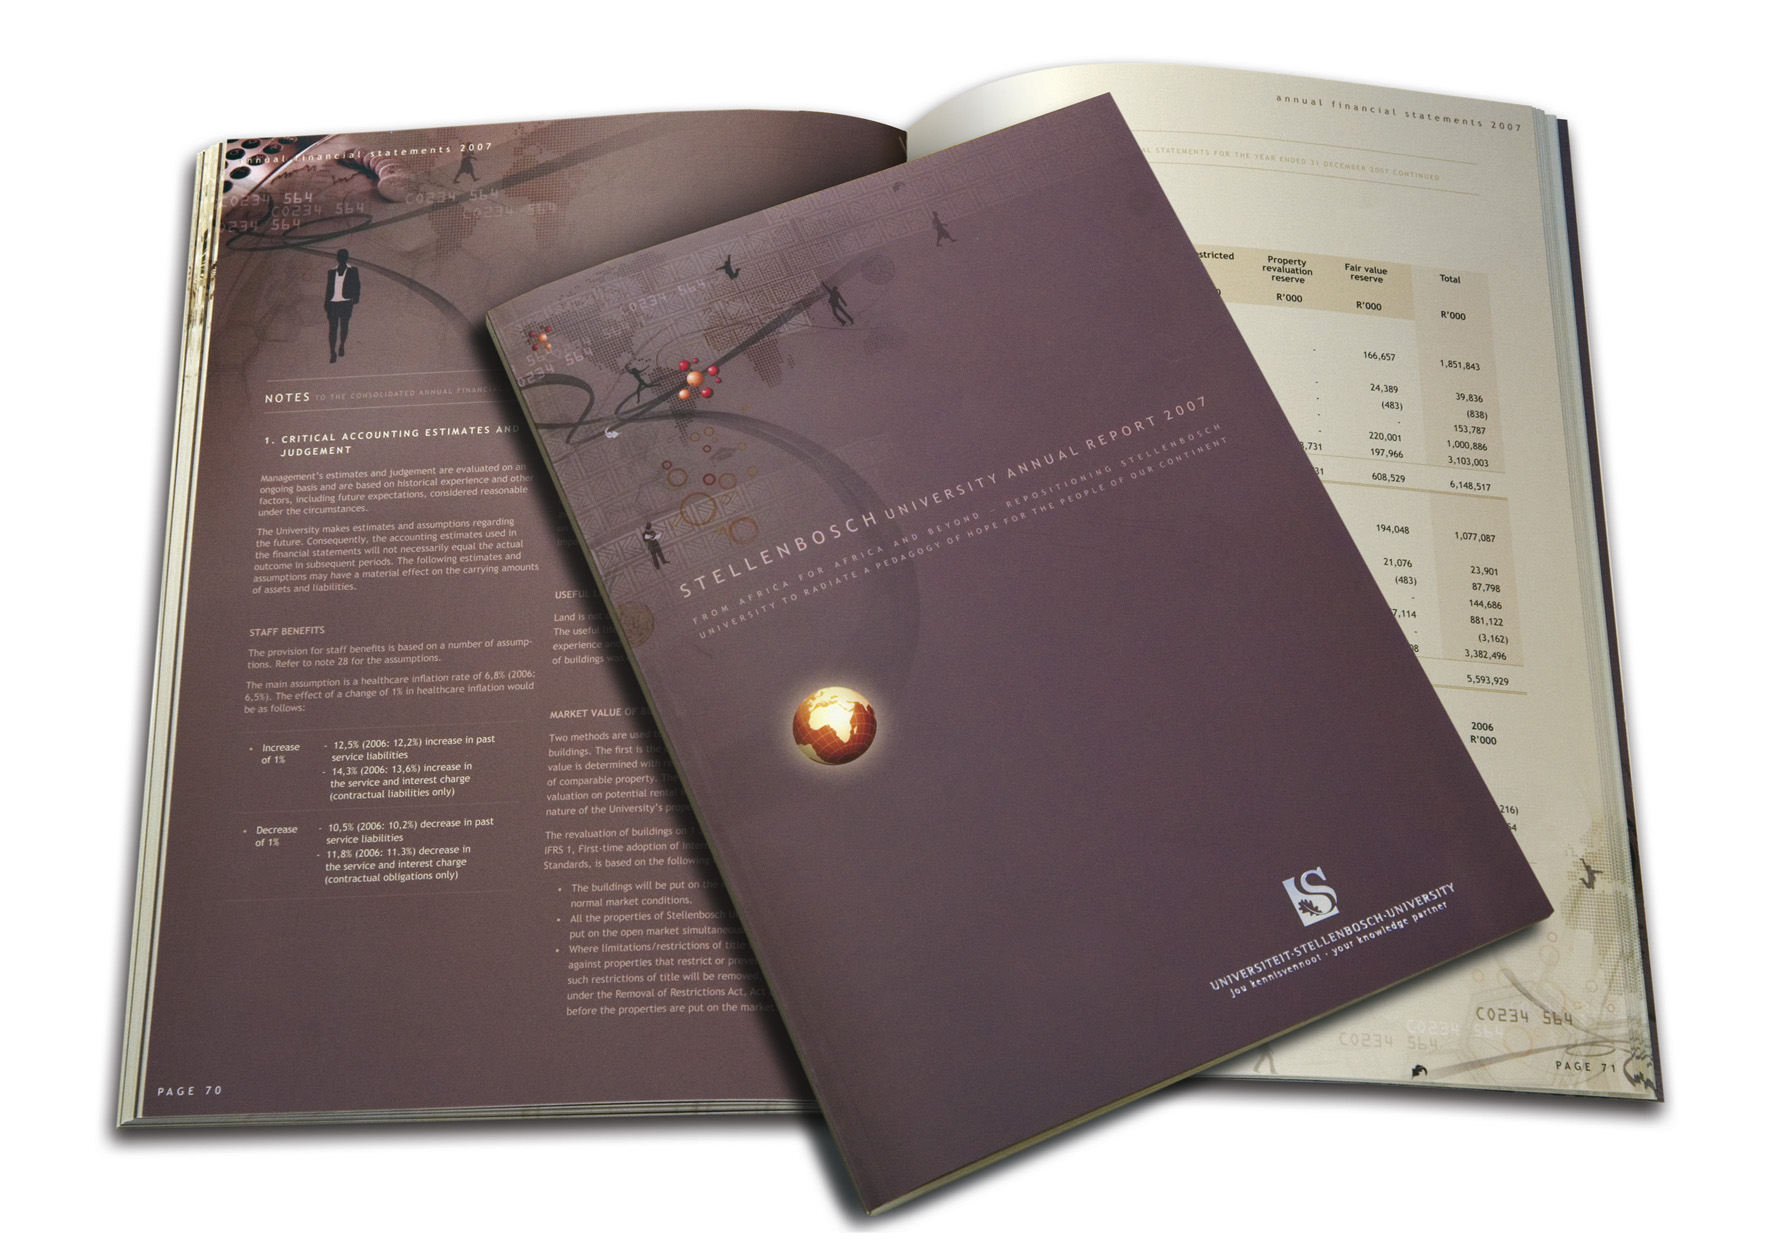 Univ. of Stellenbosch Annual Report